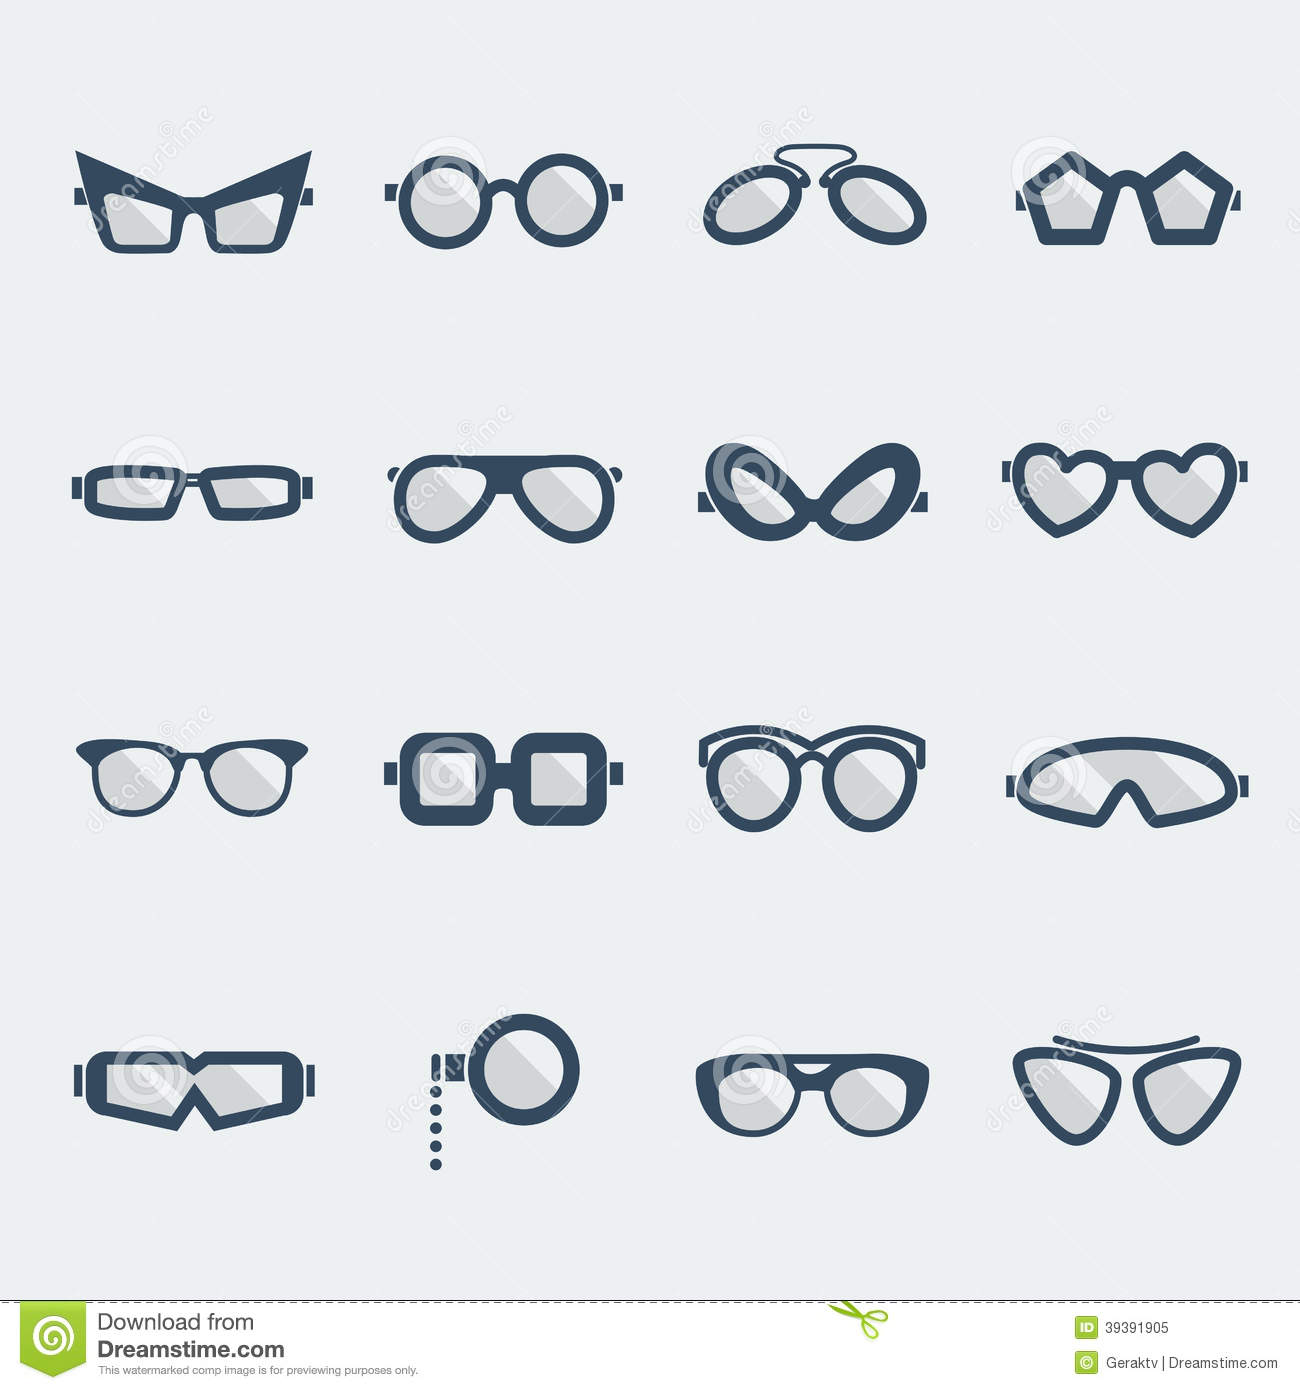 sunglasses design  Sunglasses And Glasses Stock Vector - Image: 39391905